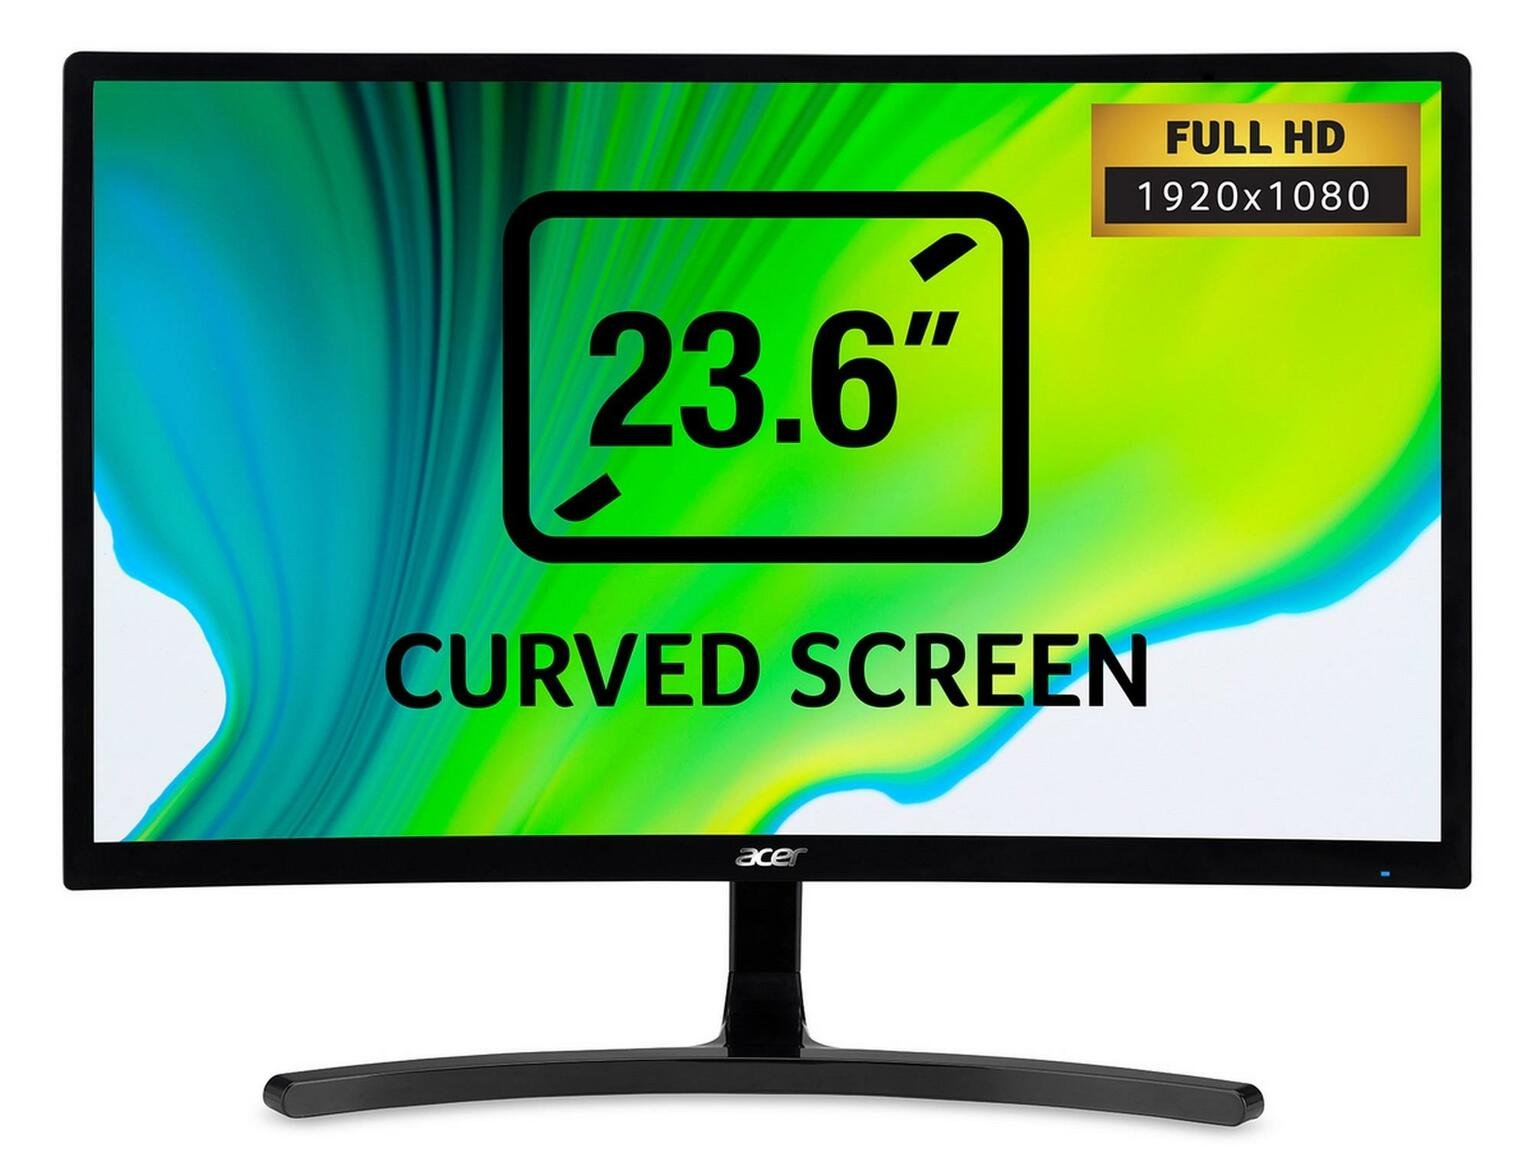 Acer ED242QRAbidpx 23.6 Inch FHD Curved Monitor, Black(VA Panel, FreeSync, 144 Hz, 4 ms, DP, HDMI, DVI) Best Price and Cheapest